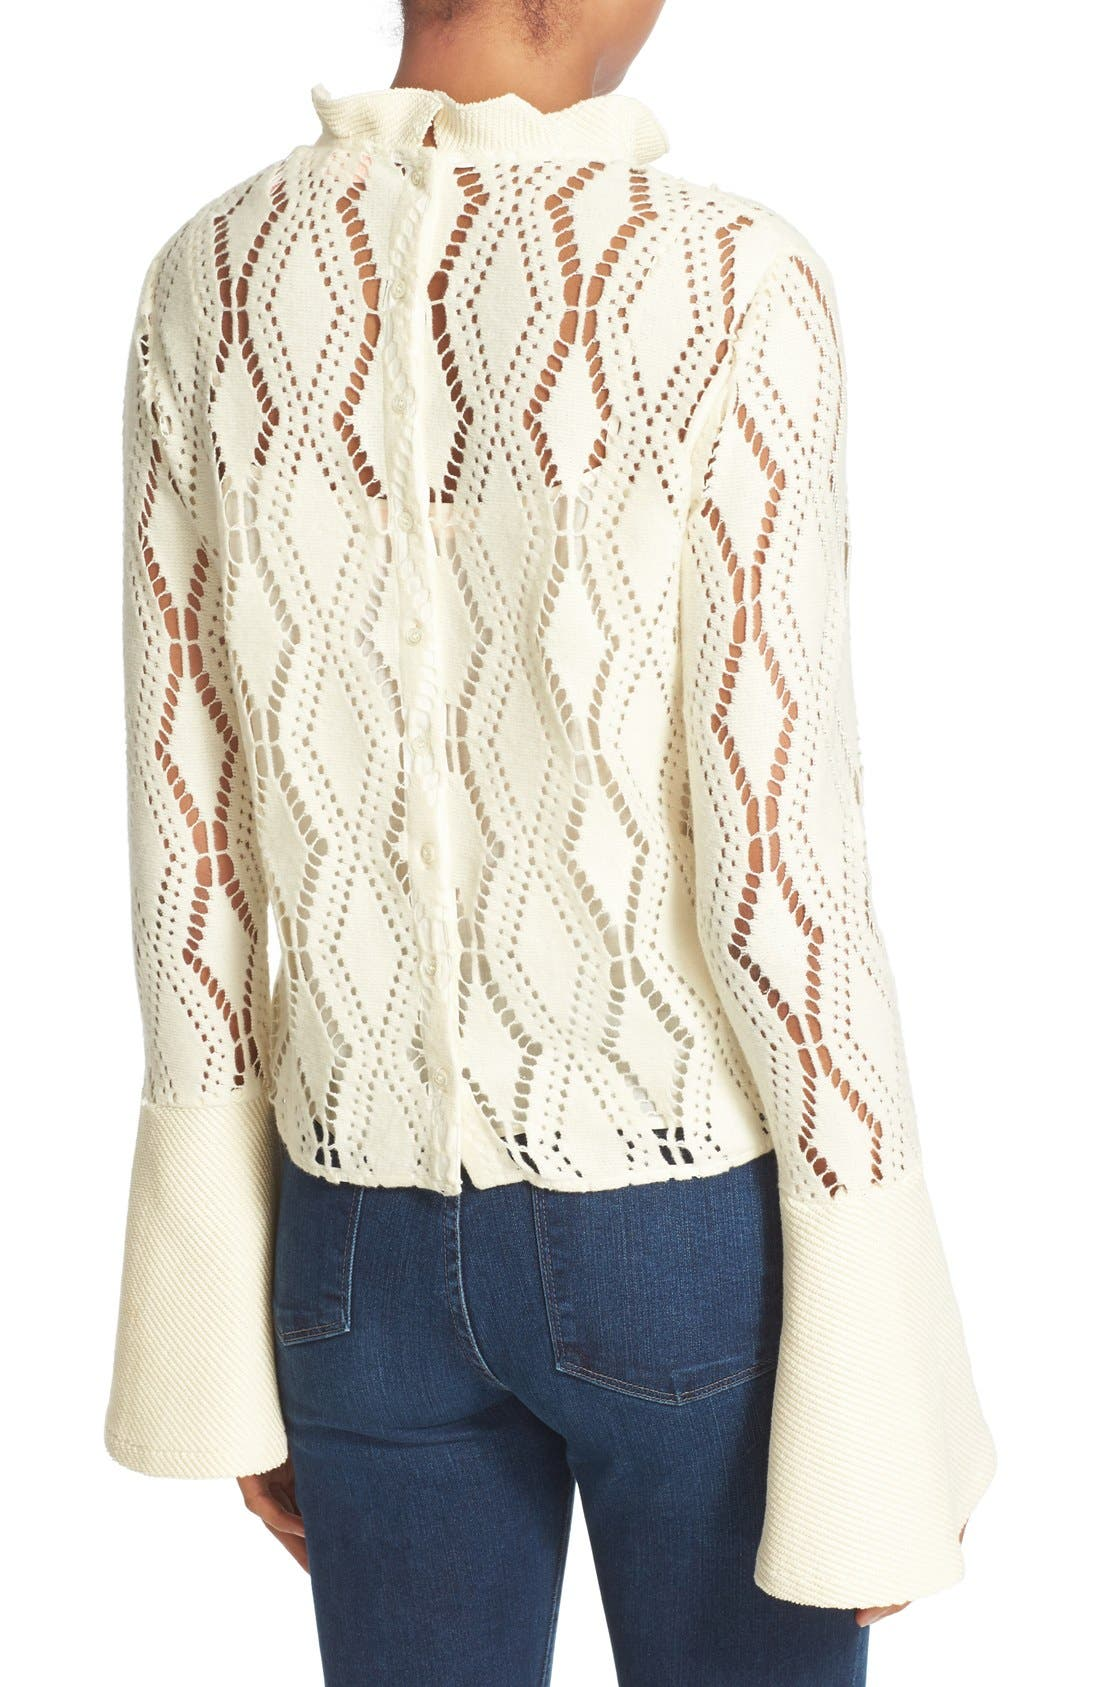 SEE BY CHLOÉ, Lace Top, Alternate thumbnail 2, color, 101